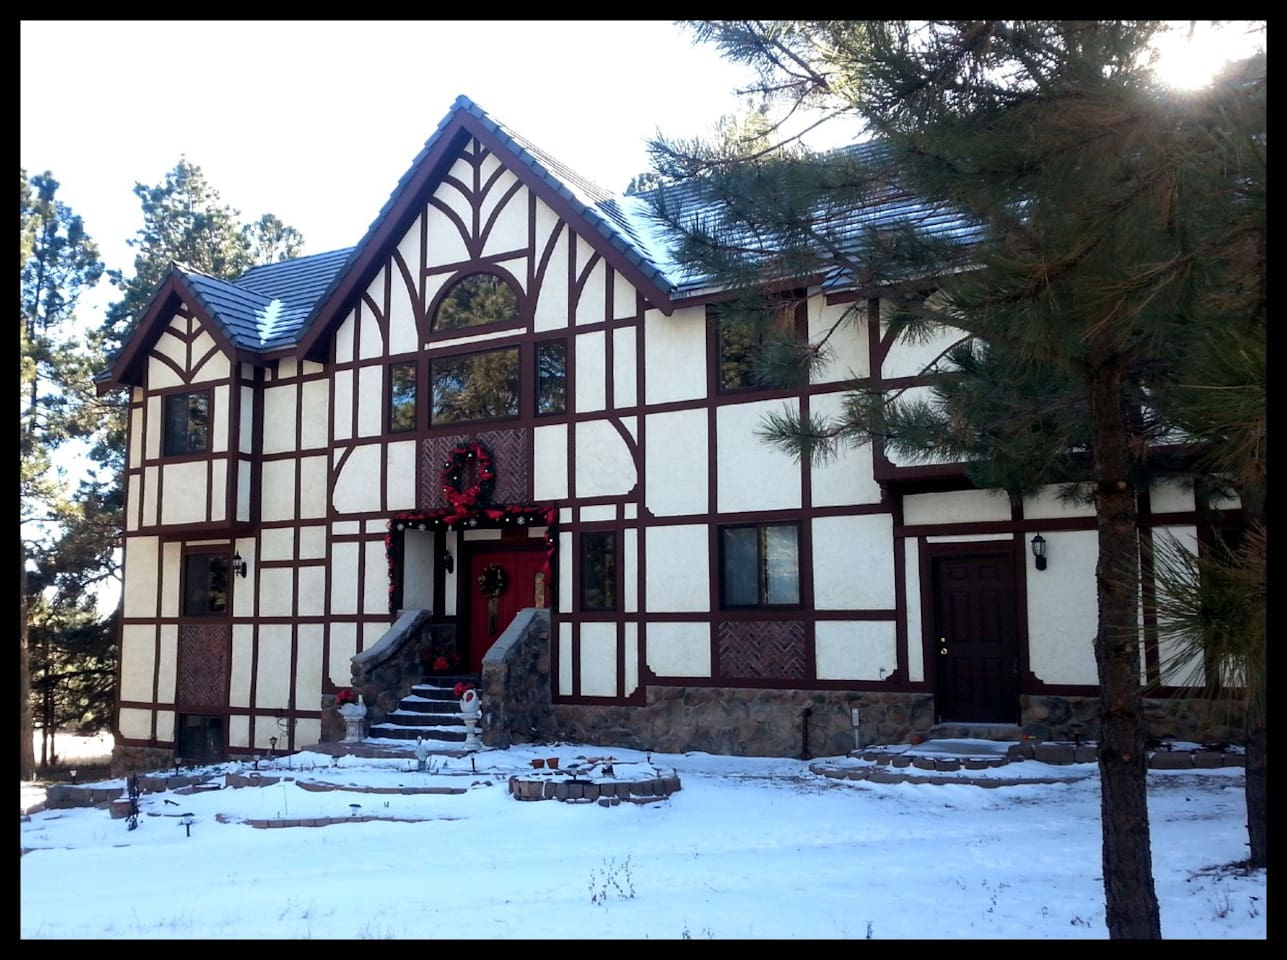 The Forest Manor is nestled in the pine forest north of Colorado Springs.